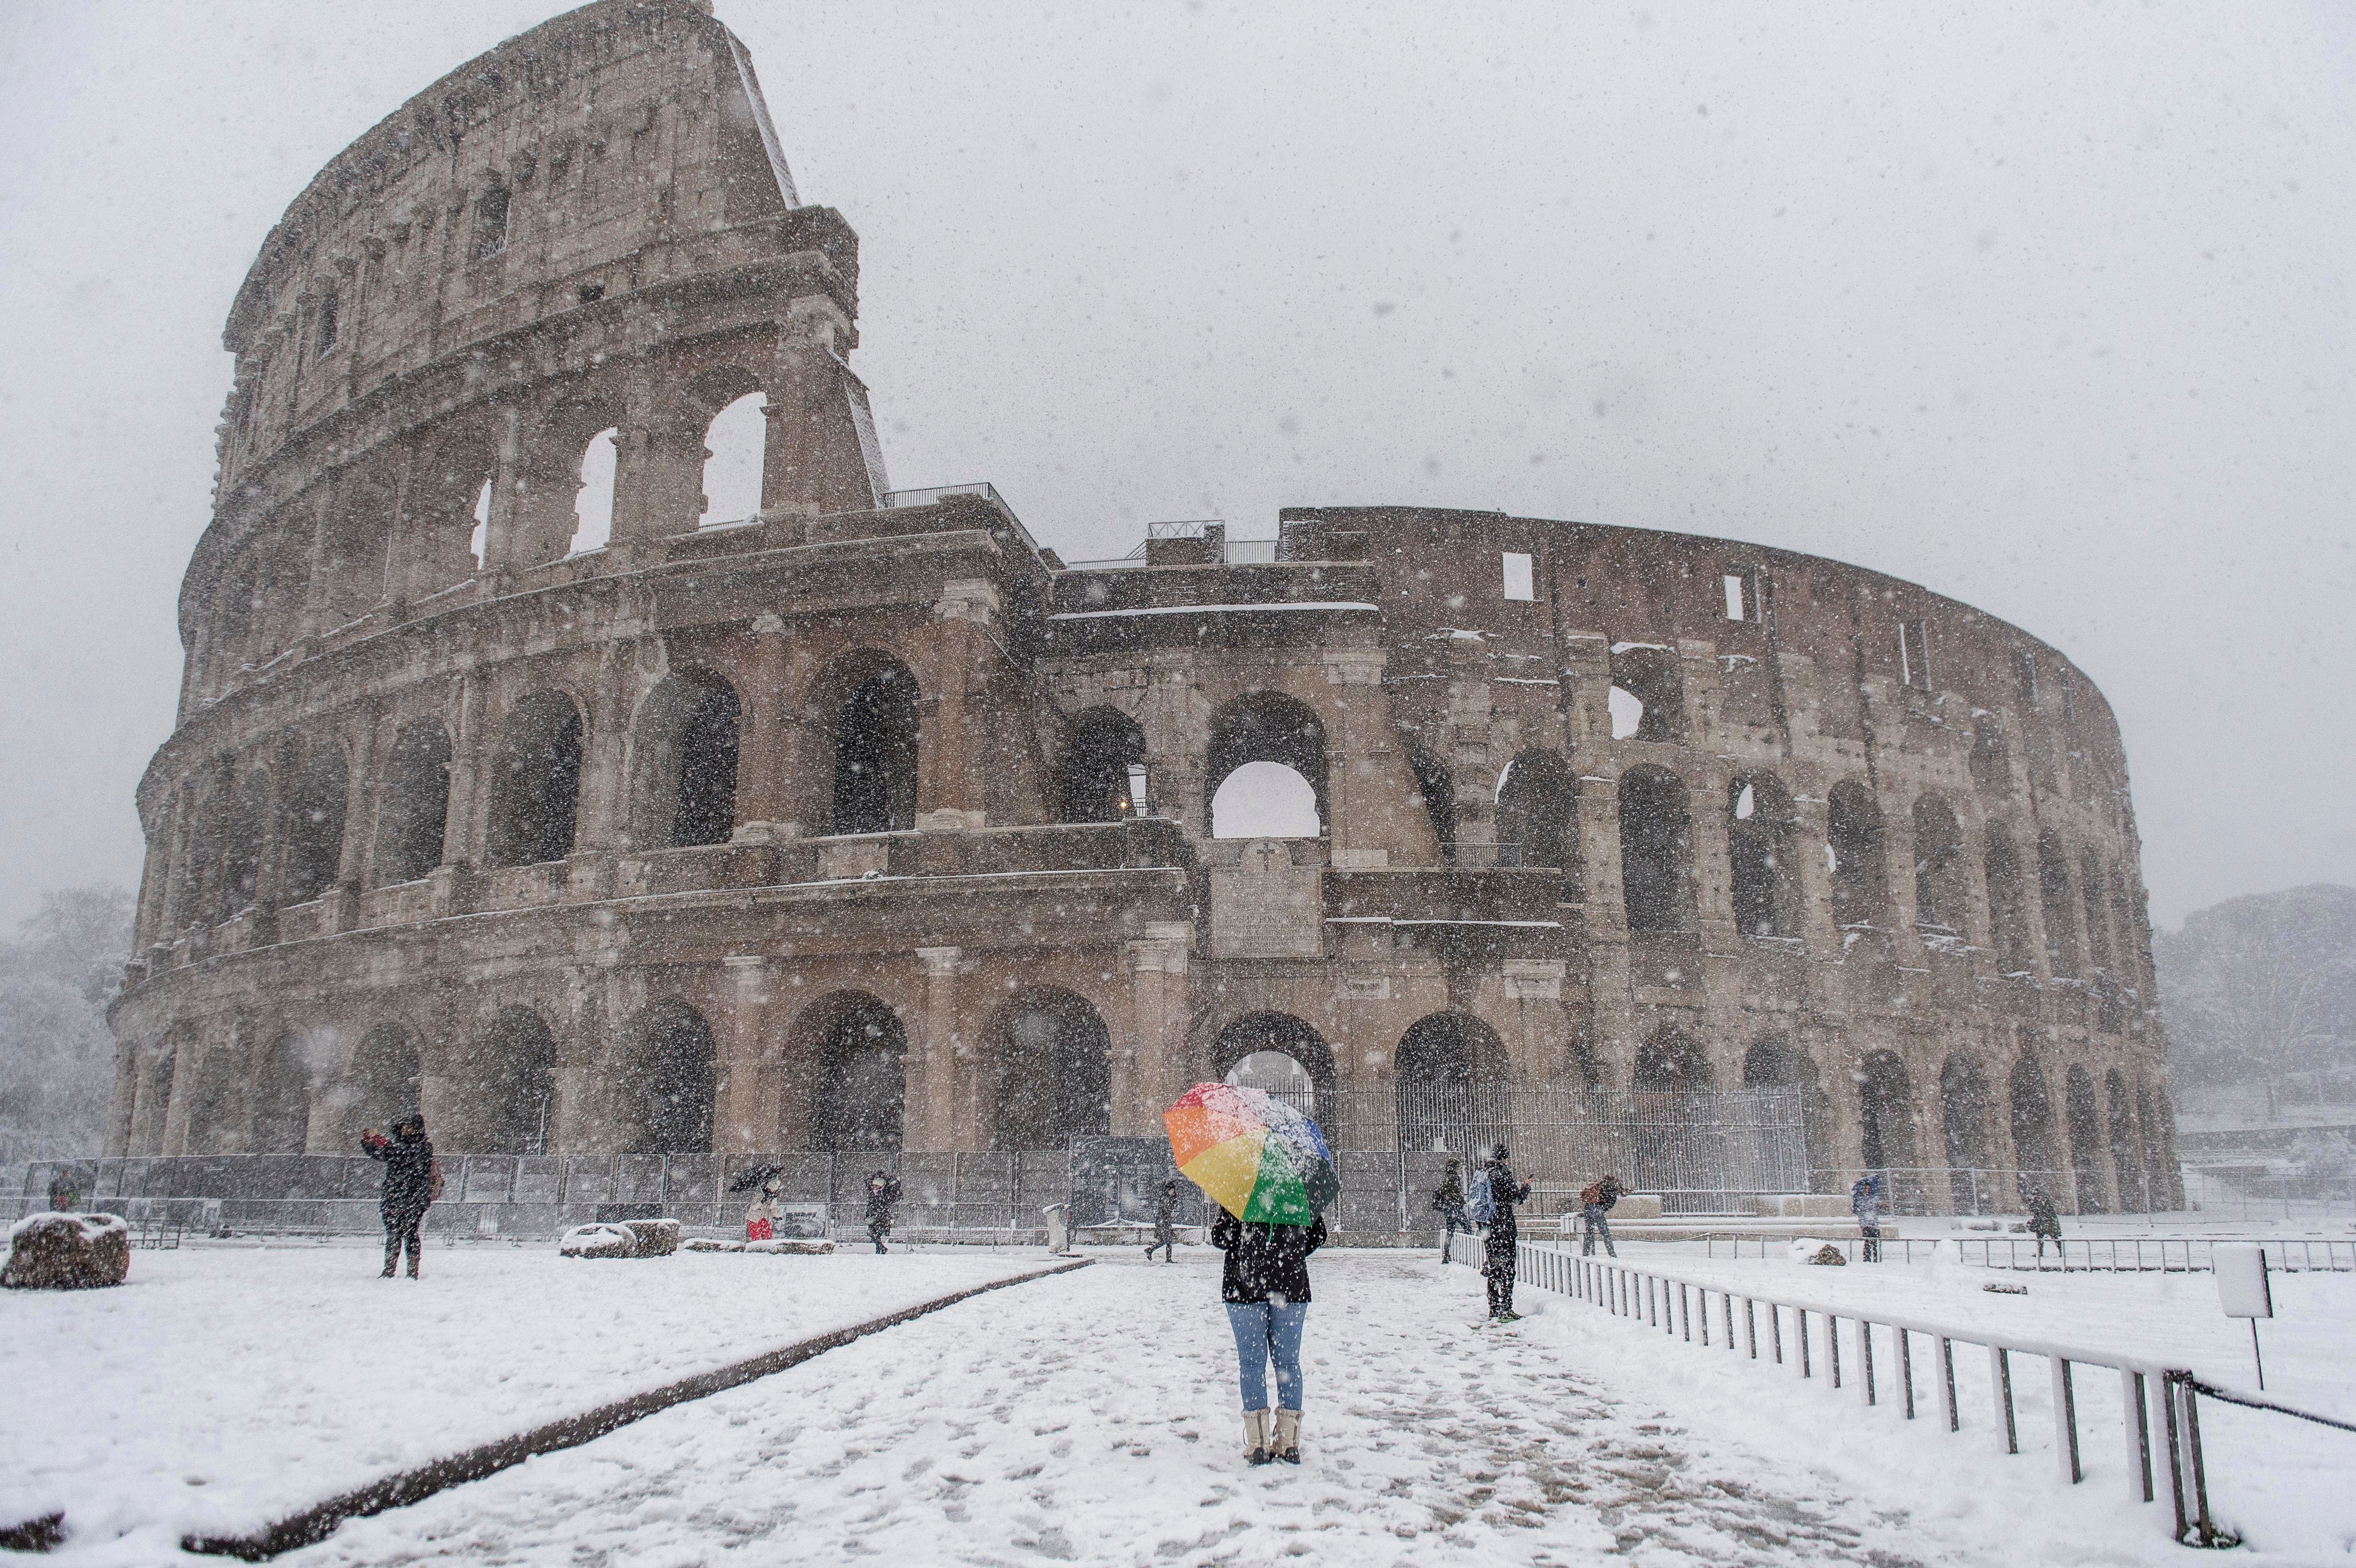 The white stuff didn't stop a few hardy souls from visiting the Colosseum.